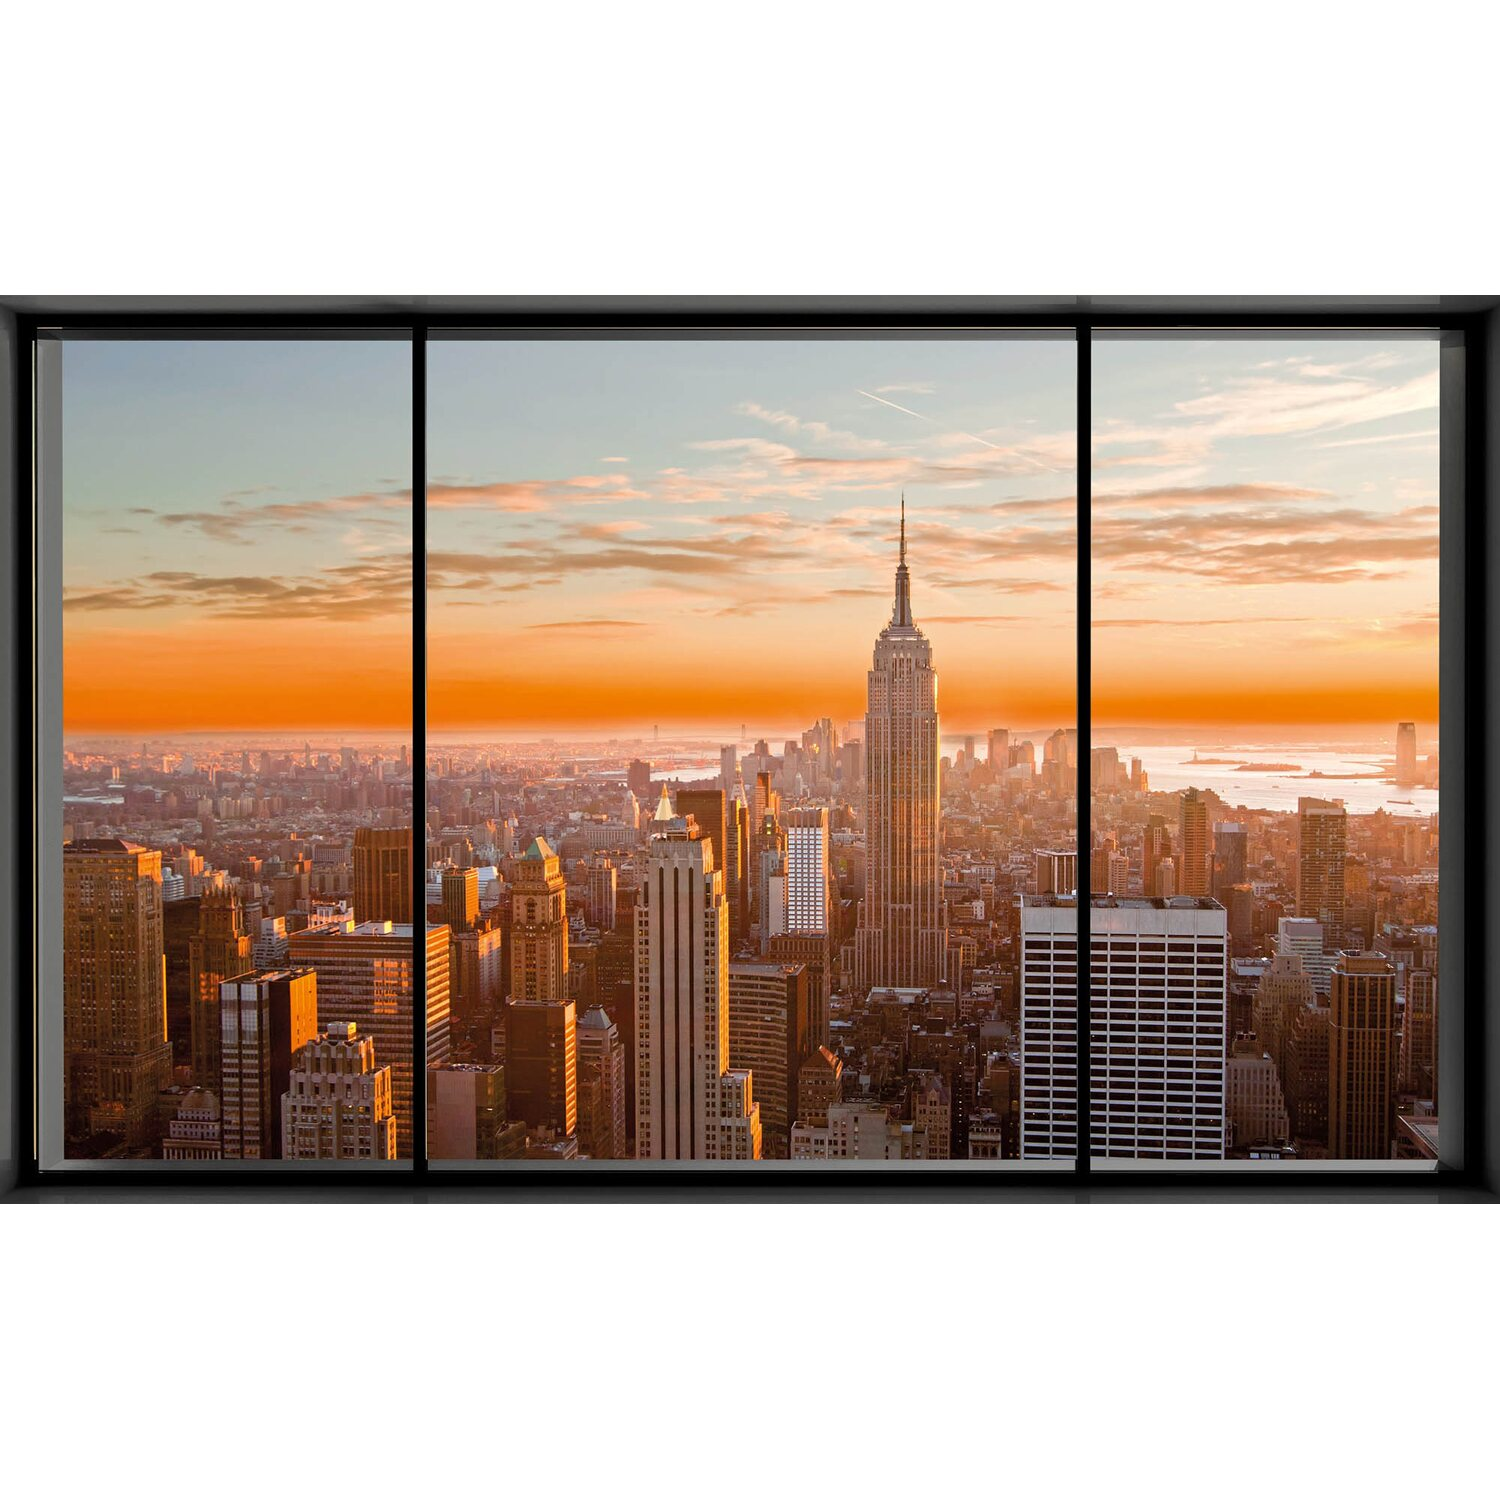 wandbild new york fenster ii 118 cm x 70 cm kaufen bei obi. Black Bedroom Furniture Sets. Home Design Ideas